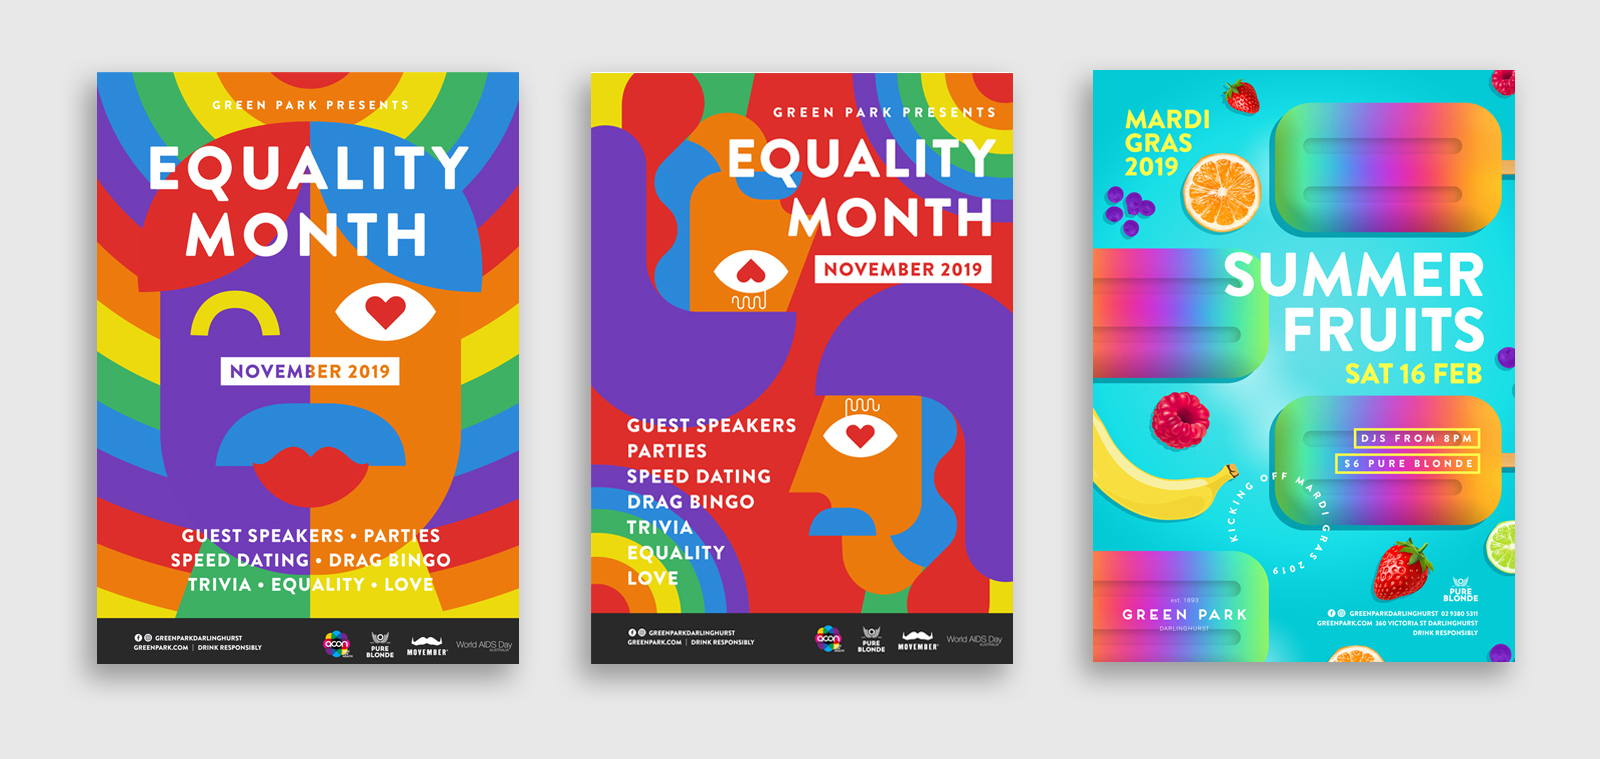 series of poster designs for mardi gras equality month at greenpark